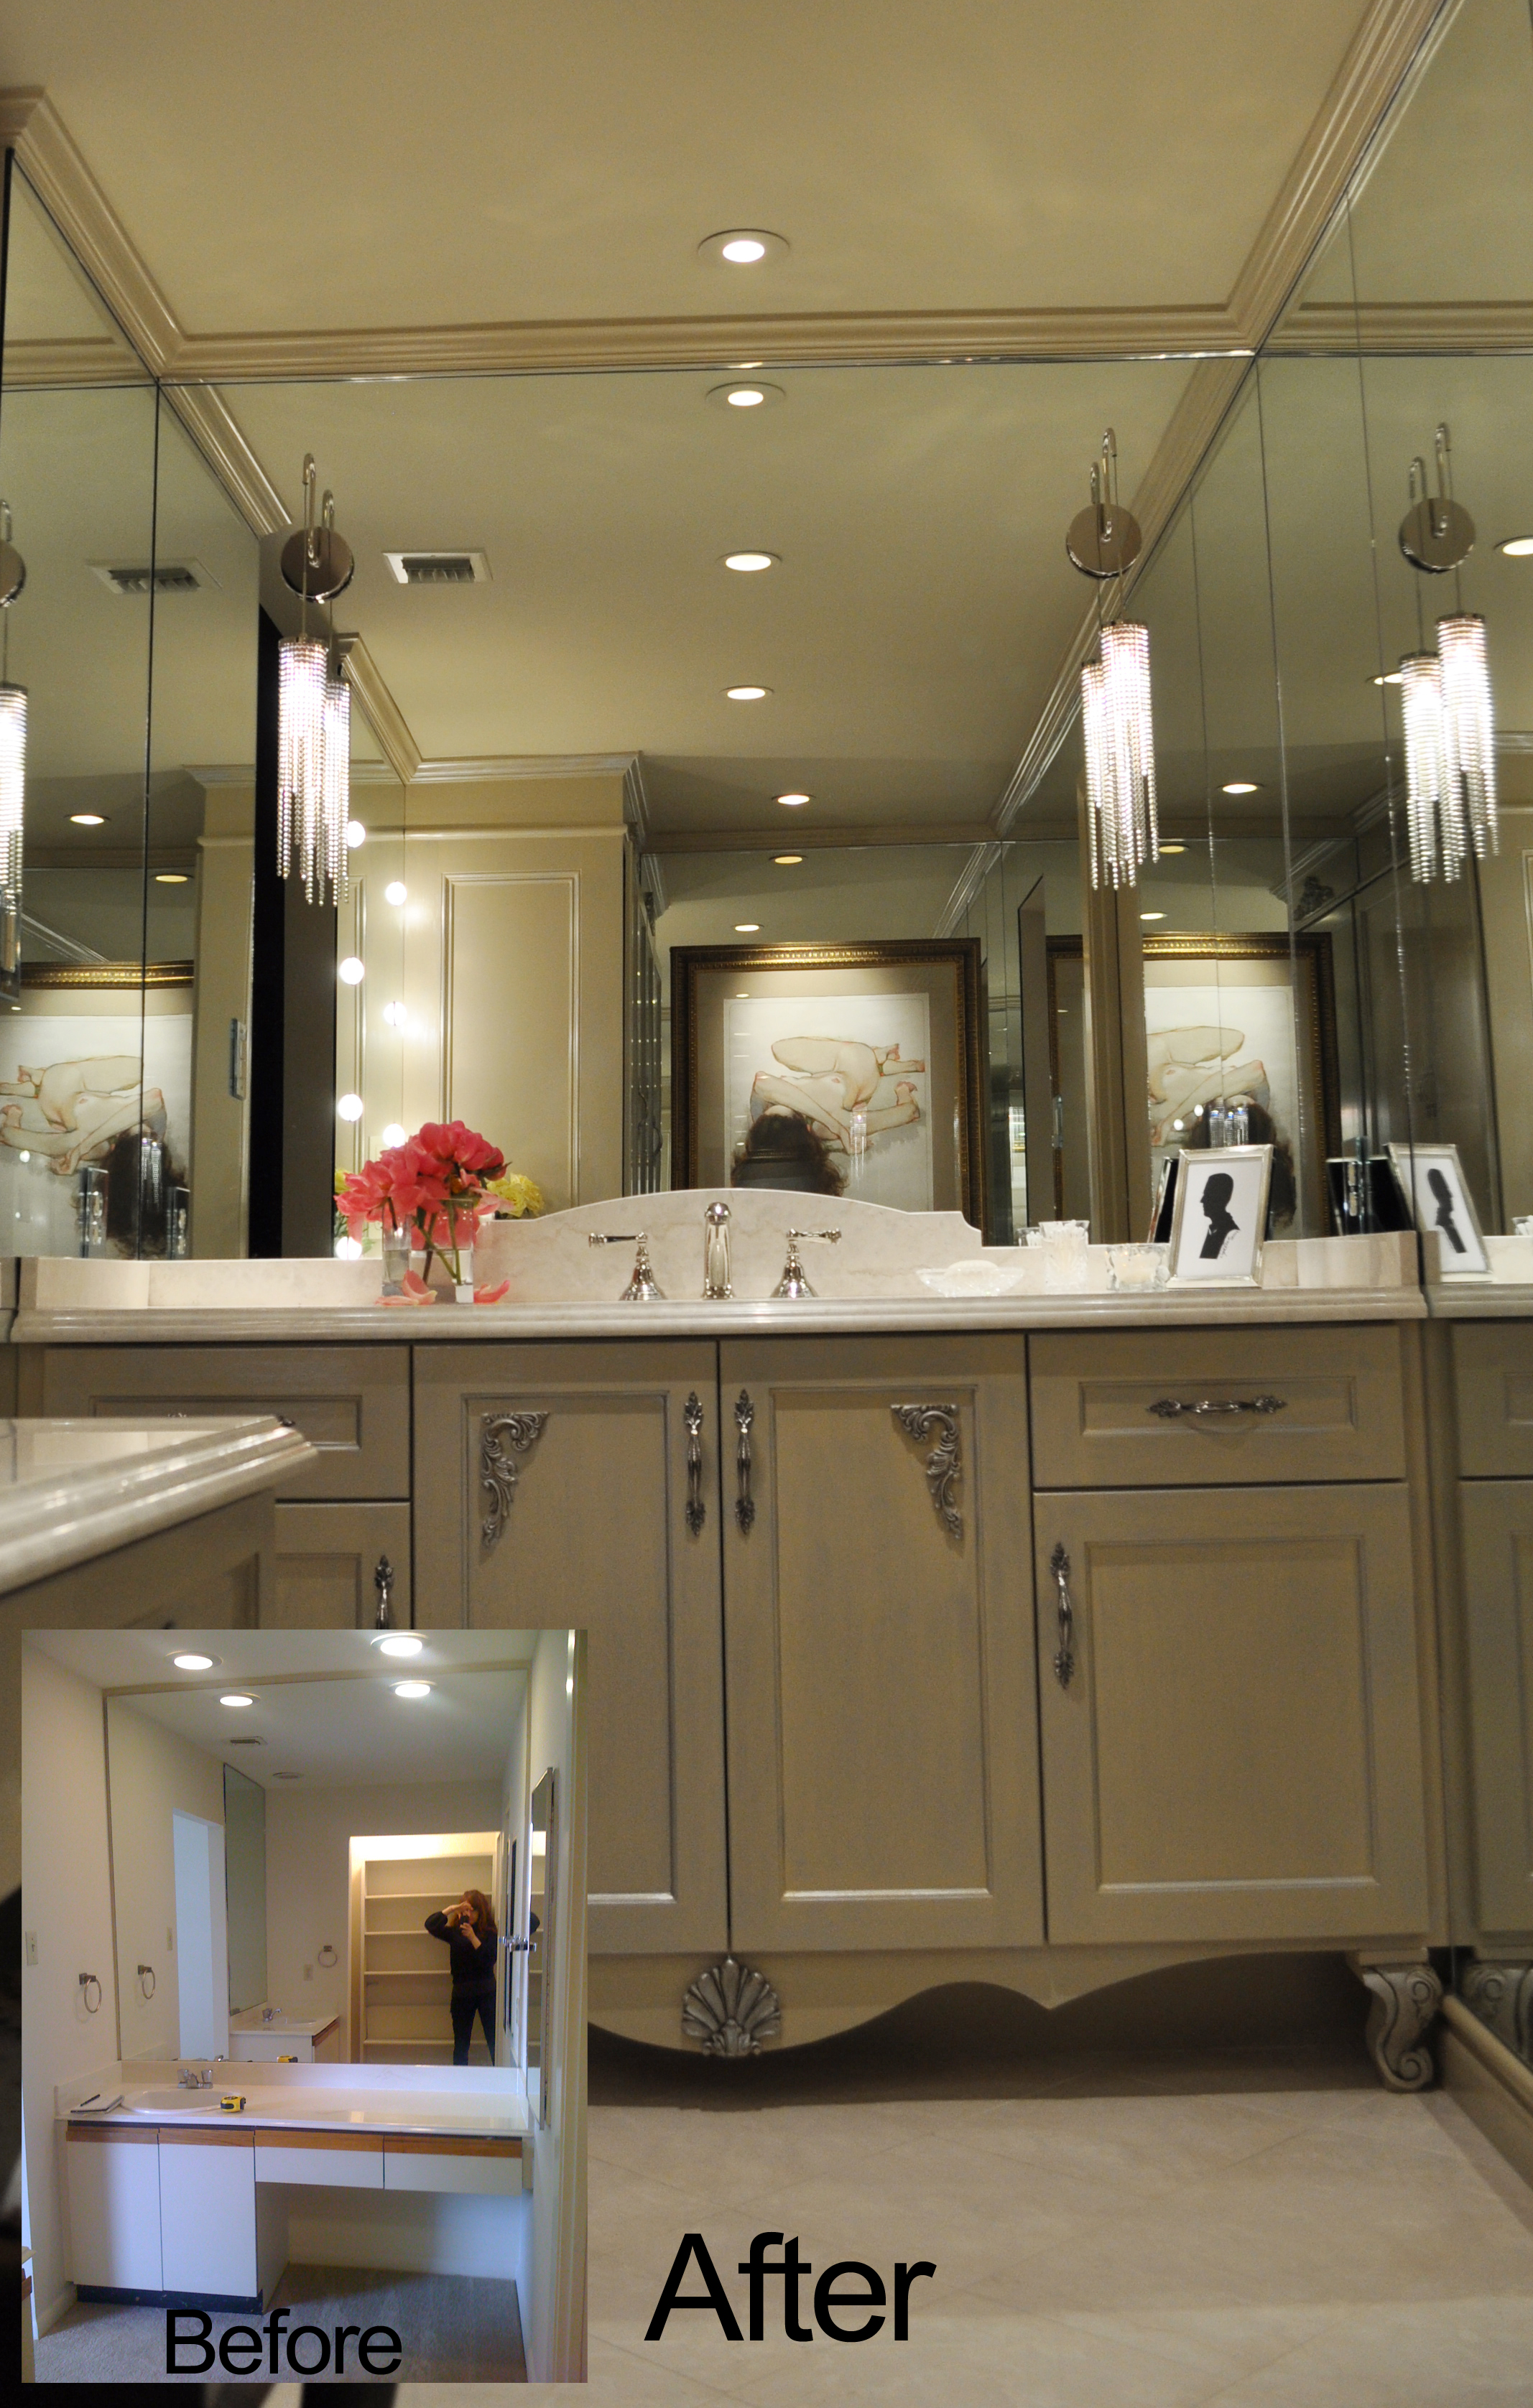 Jamie House Design MasterBath Remodel Before and After